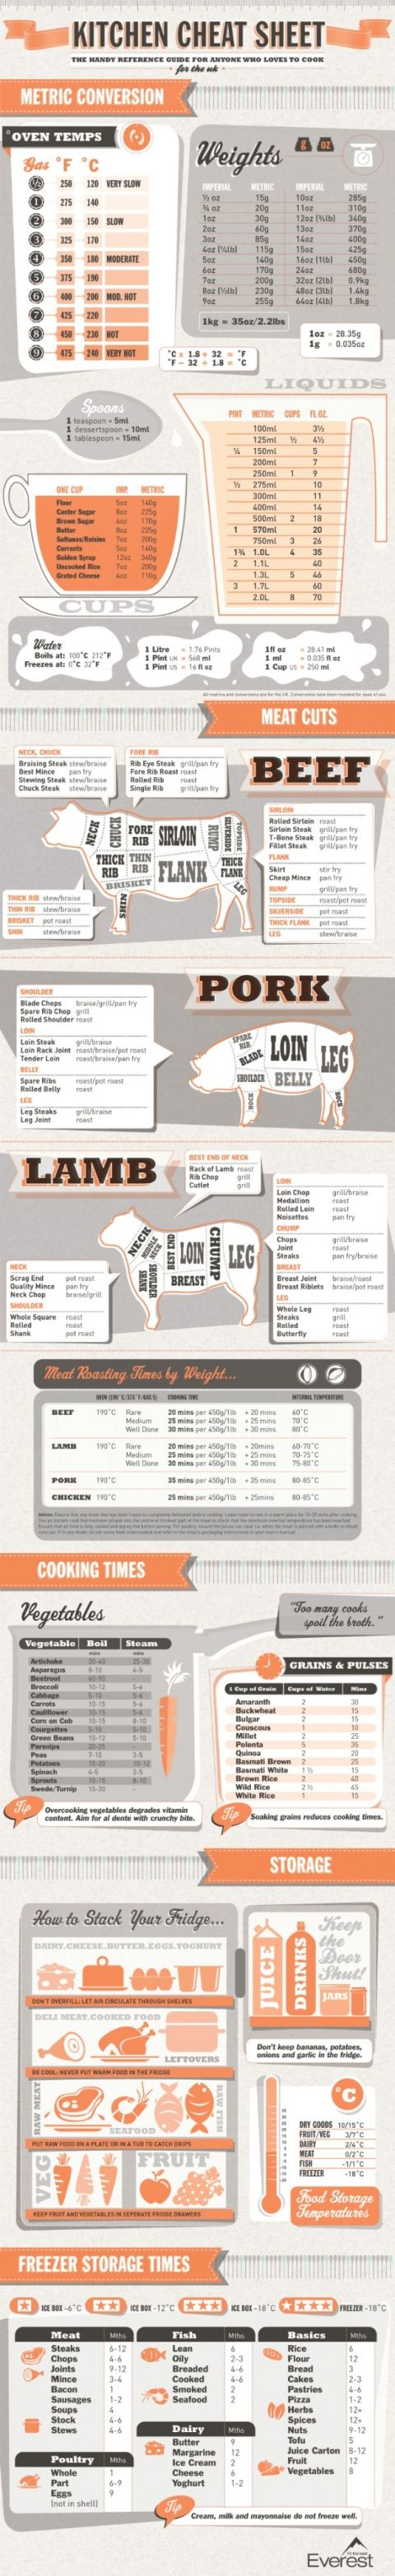 Kitchen Cheat Sheets - Page 2 of 2 - Princess Pinky Girl